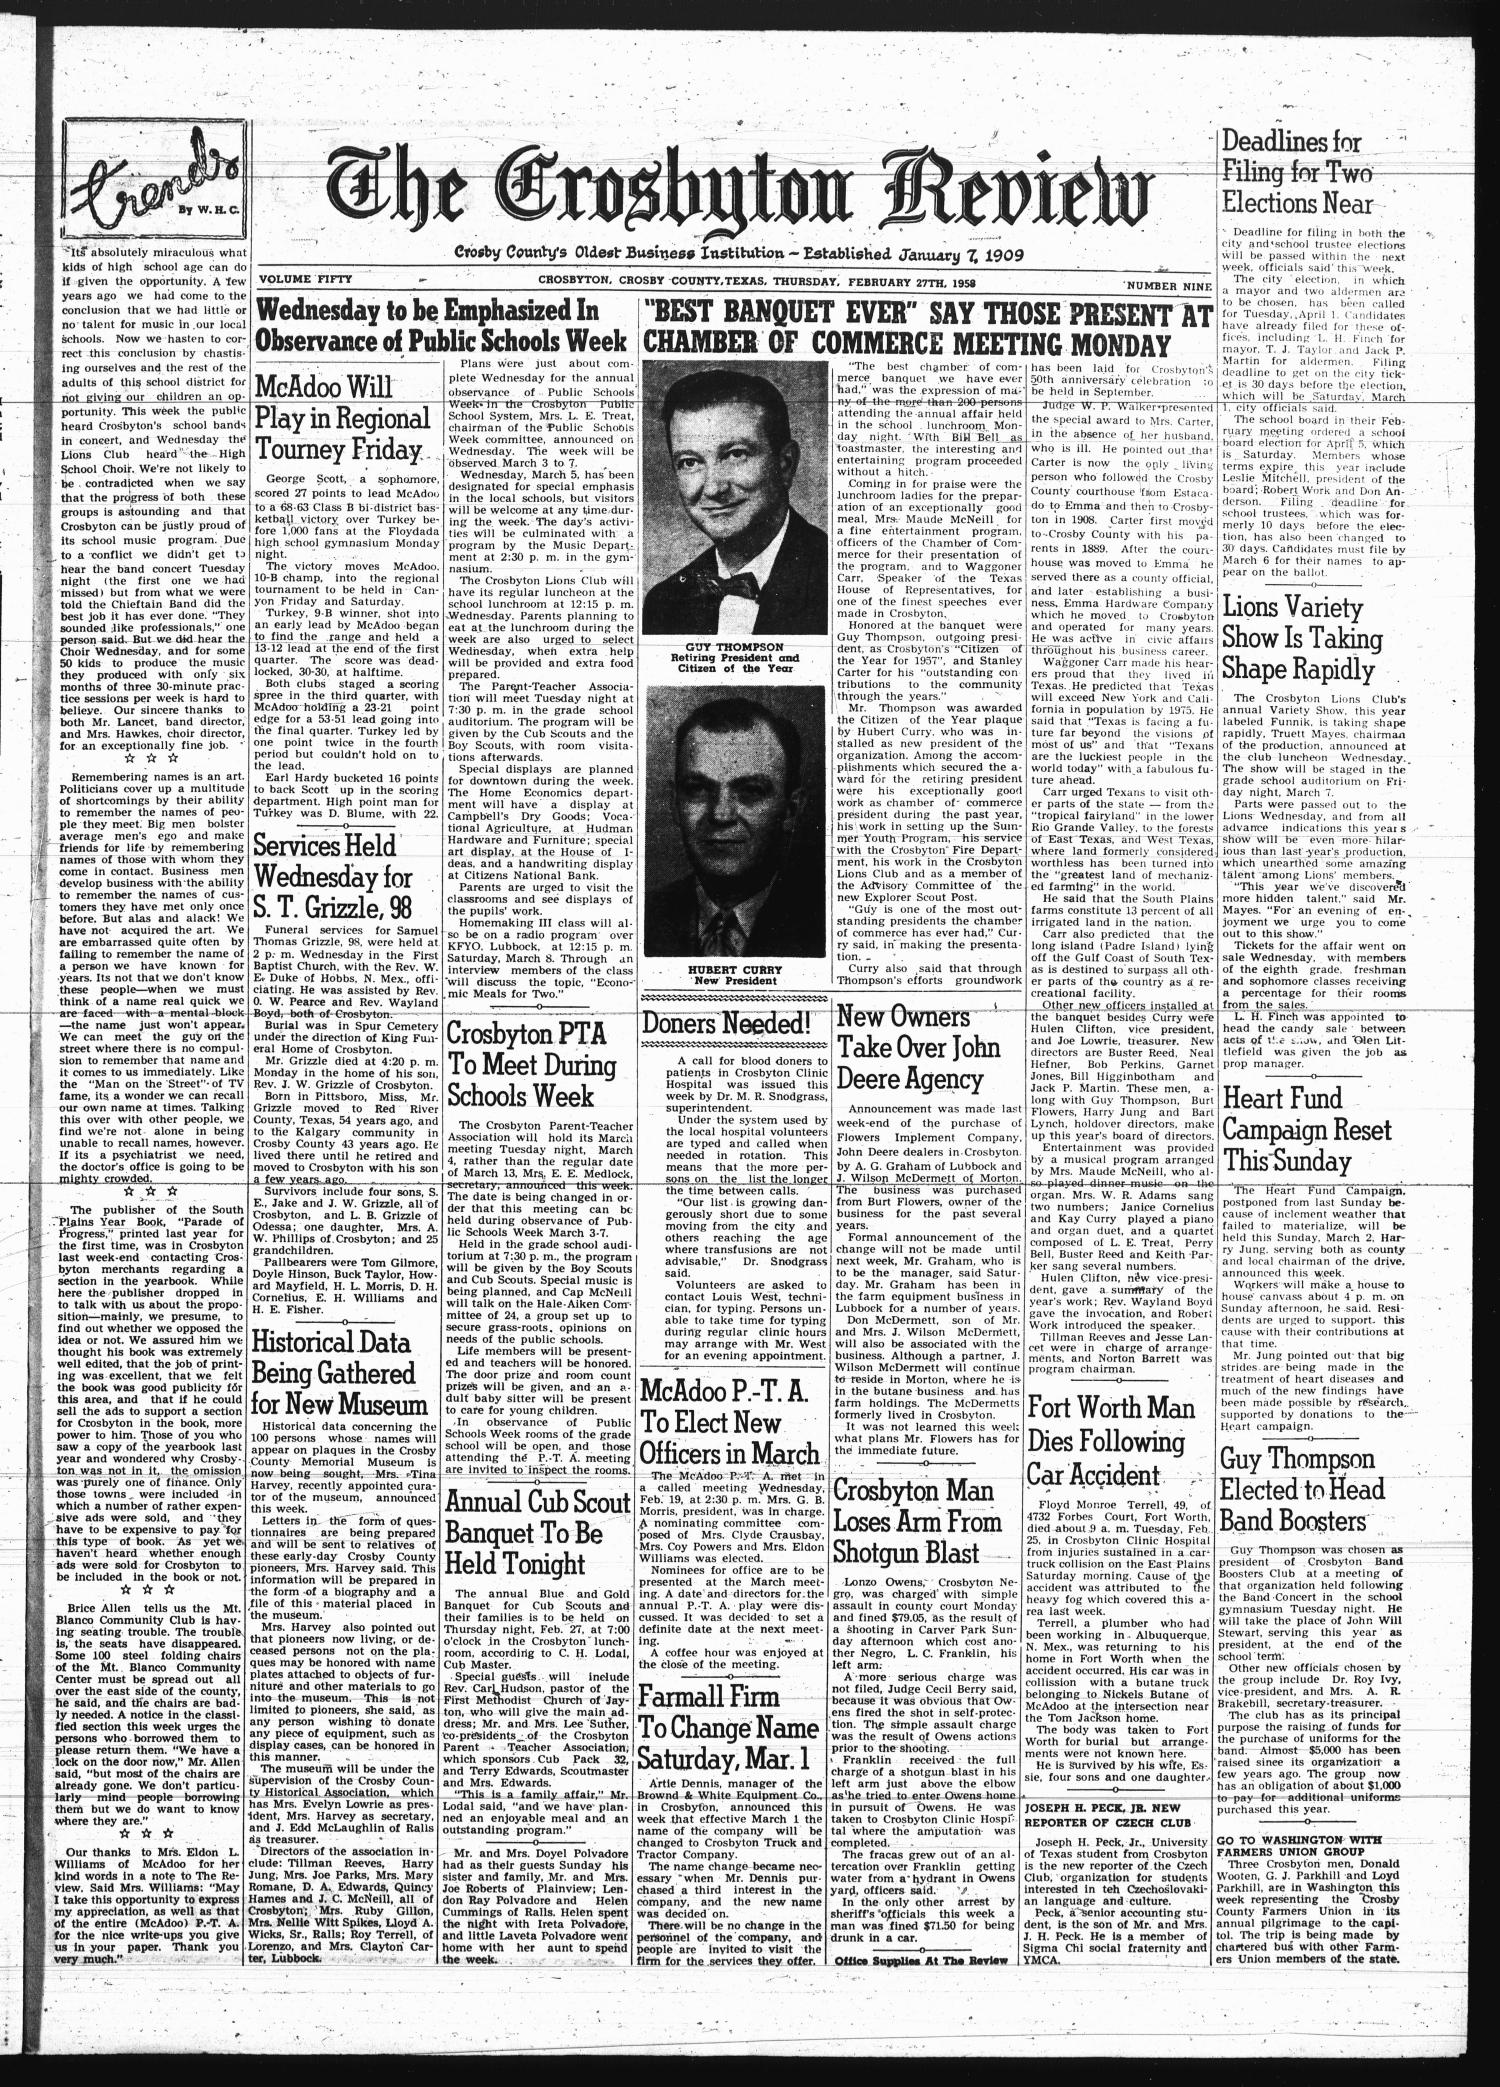 The Crosbyton Review. (Crosbyton, Tex.), Vol. 50, No. 9, Ed. 1 Thursday, February 27, 1958                                                                                                      [Sequence #]: 1 of 8